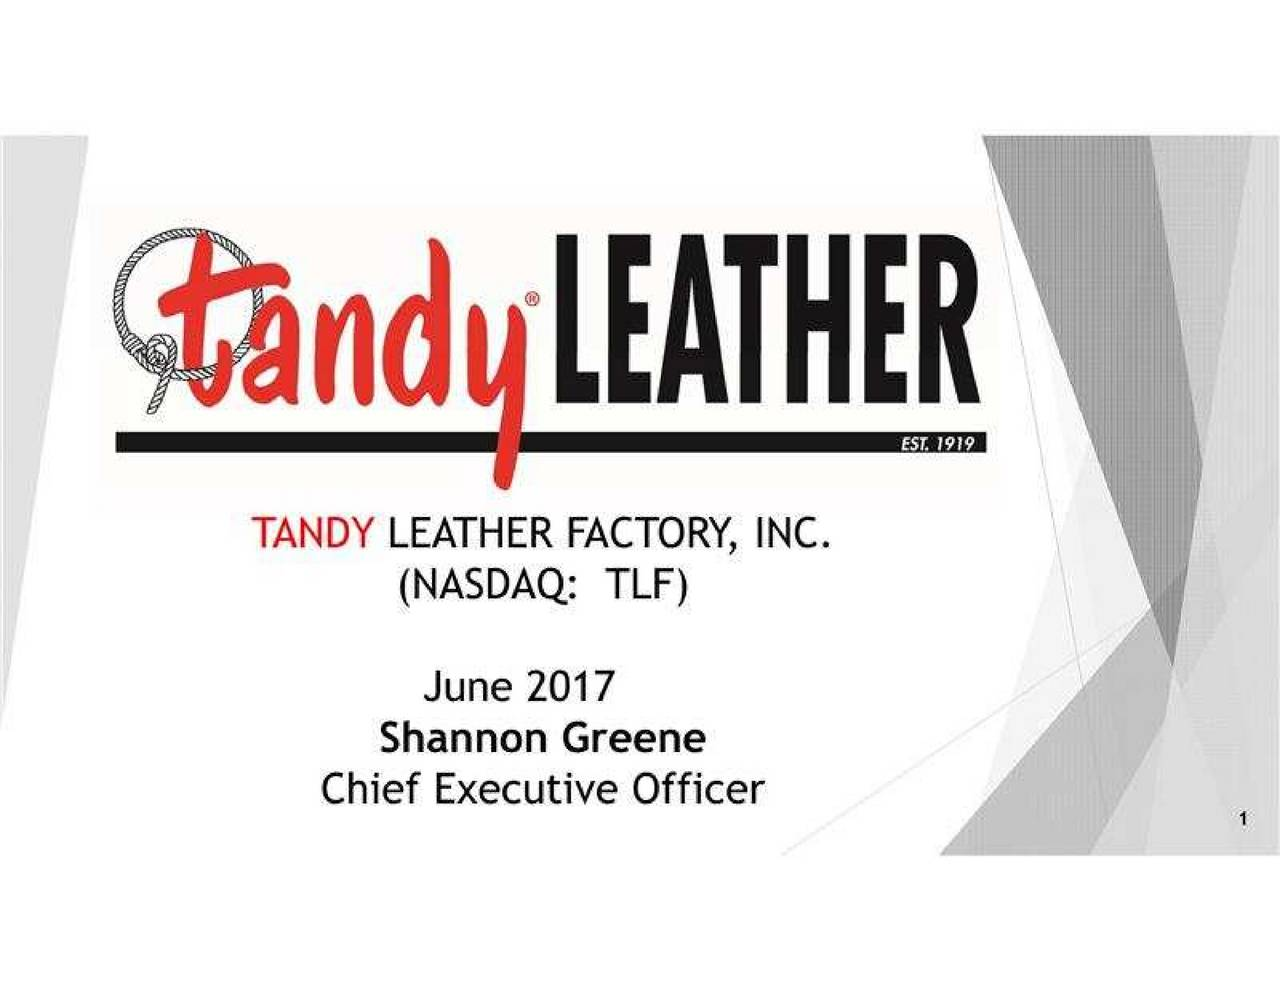 Tandy leather factory - Tandy Leather Factory Tlf Presents At 7th Annual Ld Micro Invitational Conference Slideshow